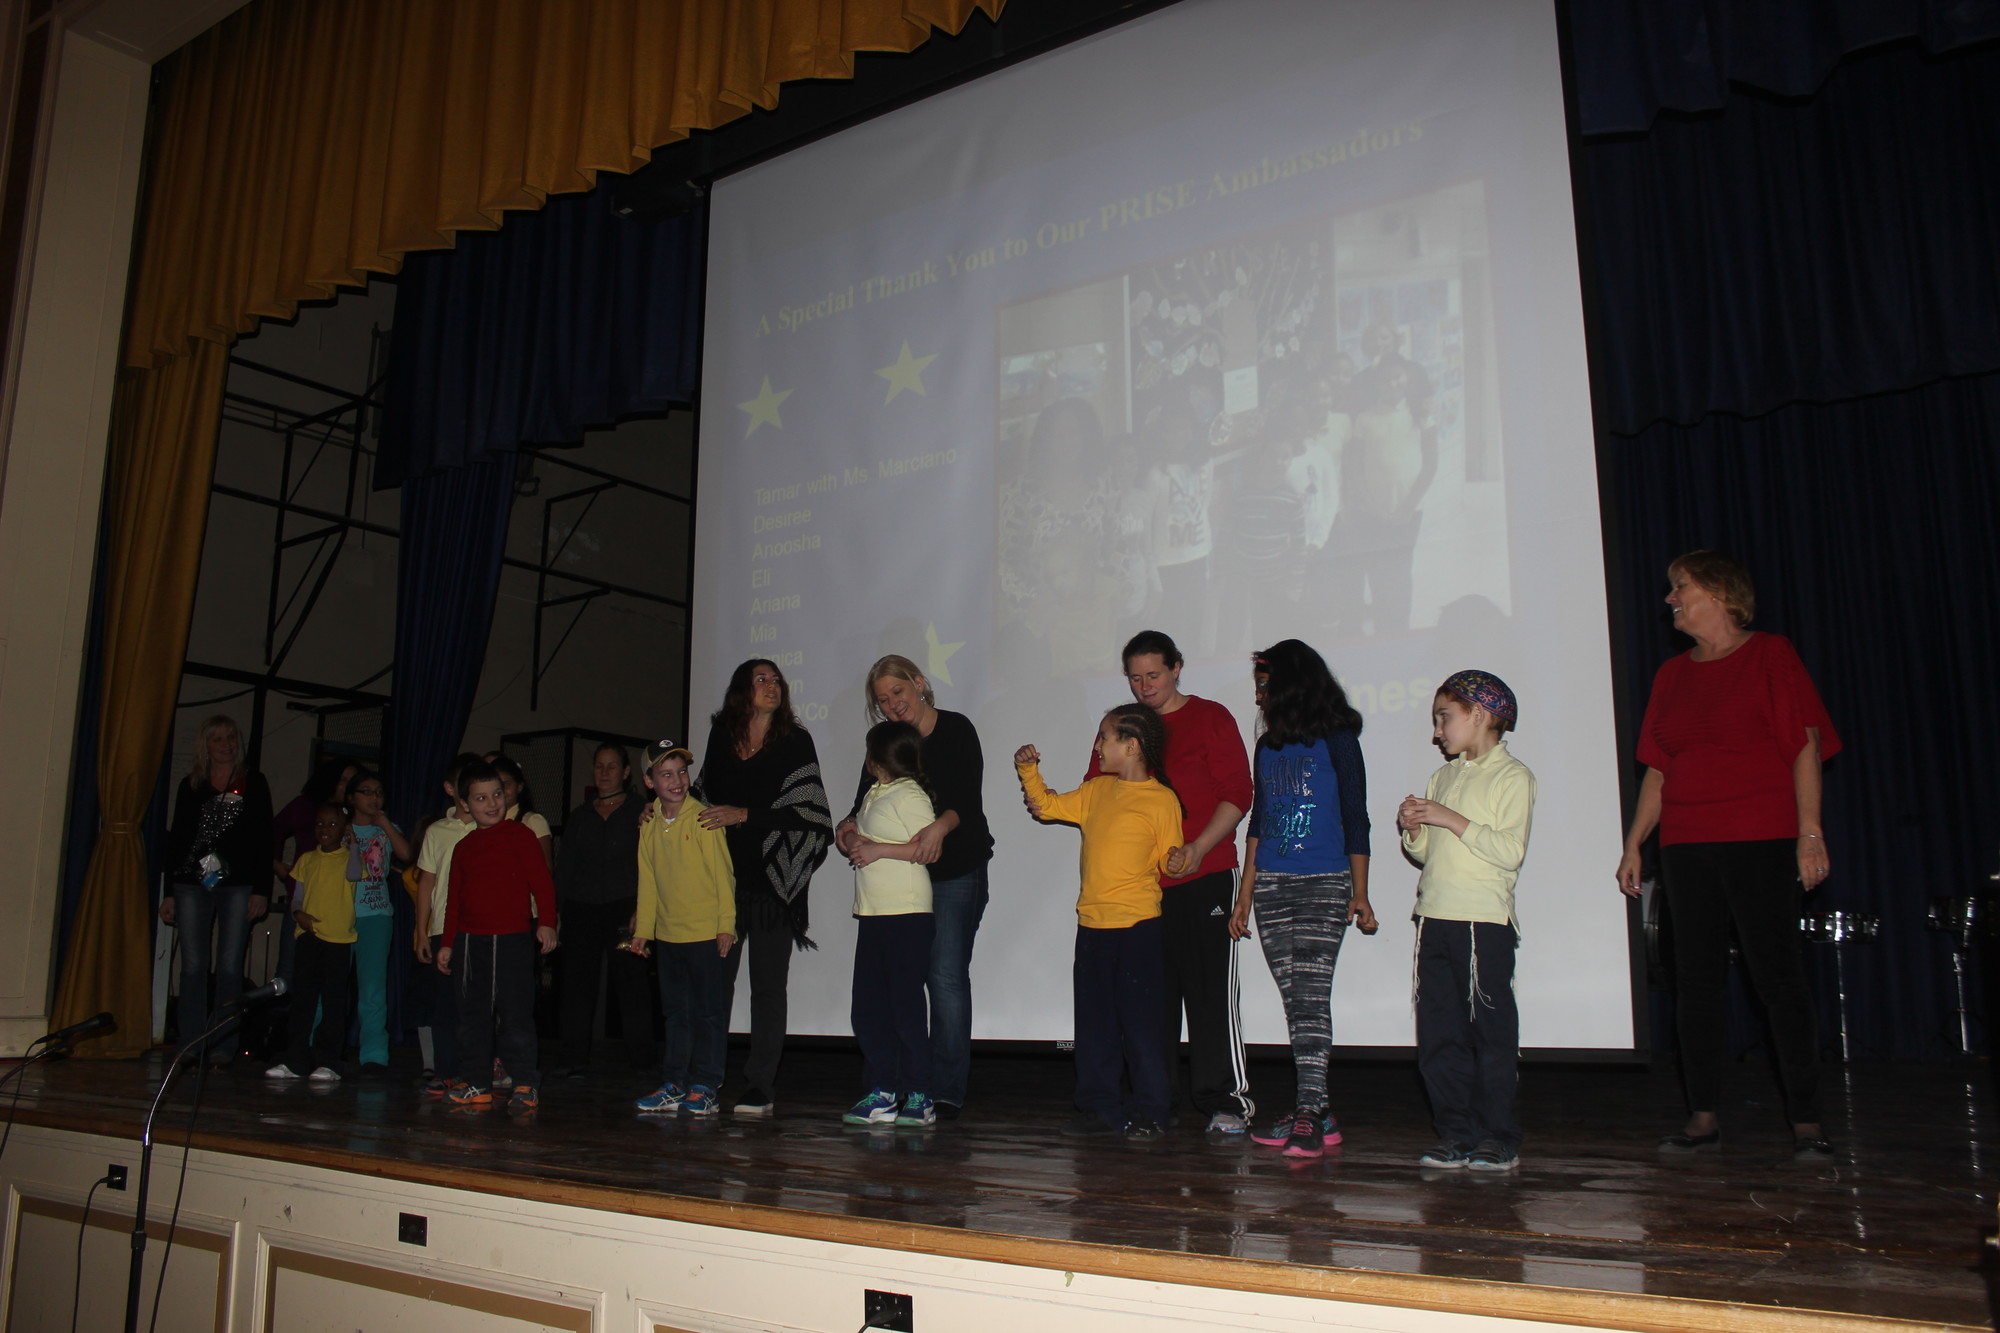 Lawrence Elementary School's PRISE ambassadors and students sang at the character education assembly on Dec. 23.